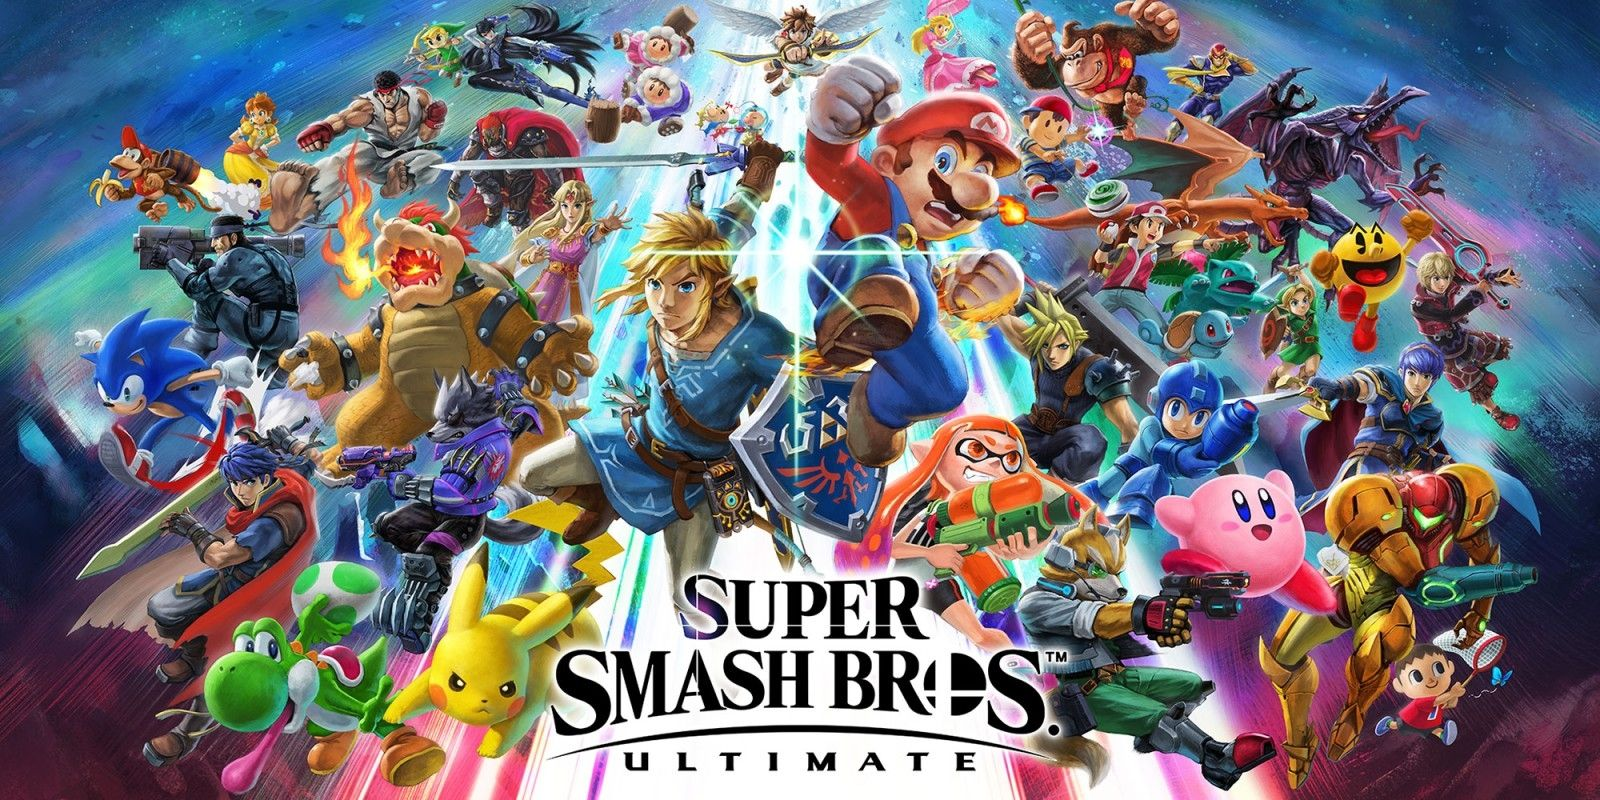 Super Smash Bros. Ultimate (Nintendo Switch) - 9